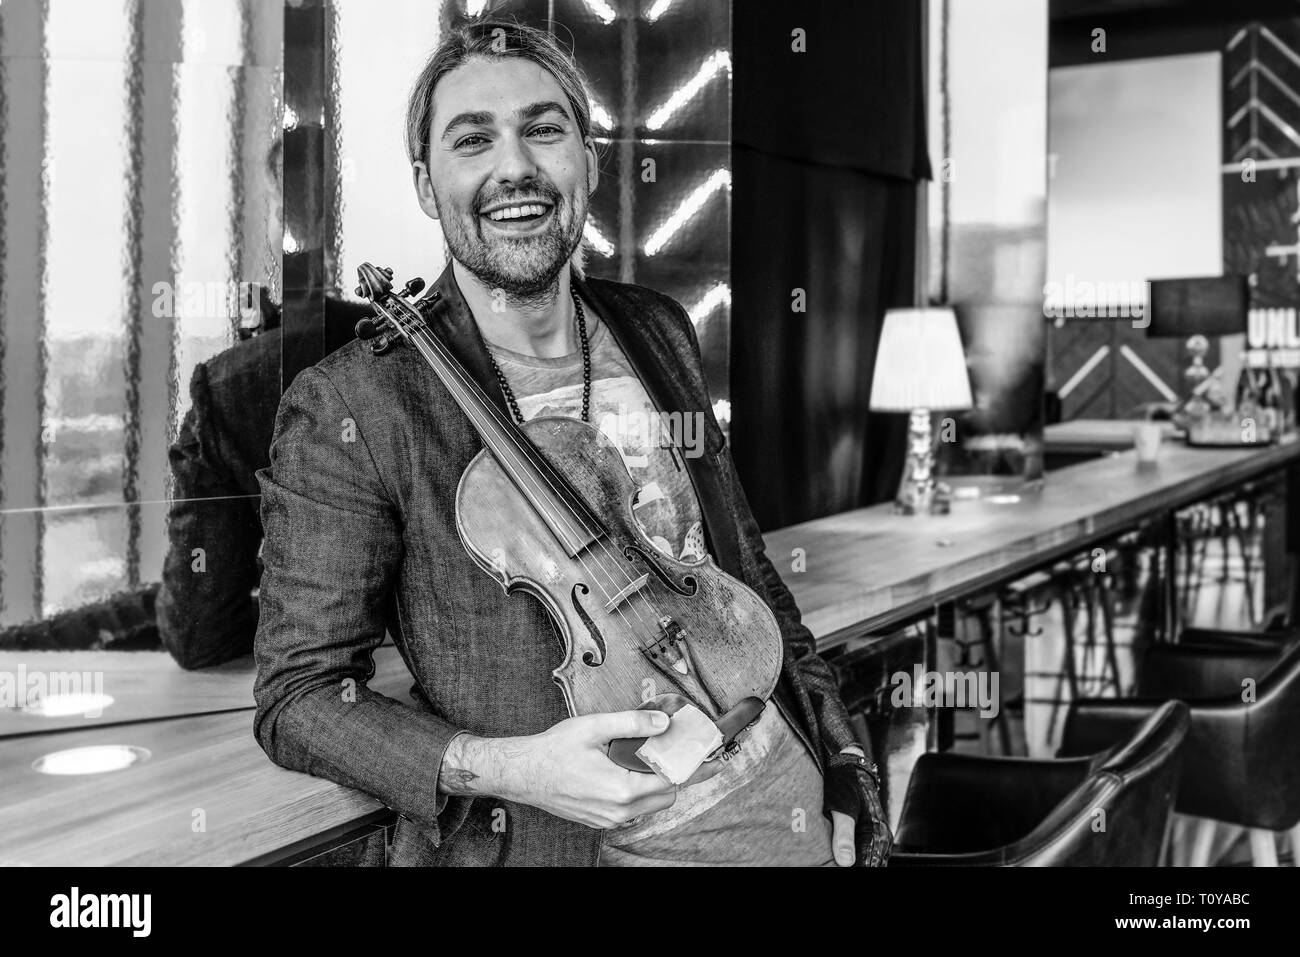 Berlin, Deutschland. 21st Mar, 2019. 21.03.2019, star violinist David Garrett presents his new crossover tour UNLIMITED - GREATEST HITS at the 260-degree bar in Berlin, with which he will perform in the capital. Portrait of the musician with his violin. | usage worldwide Credit: dpa/Alamy Live News - Stock Image